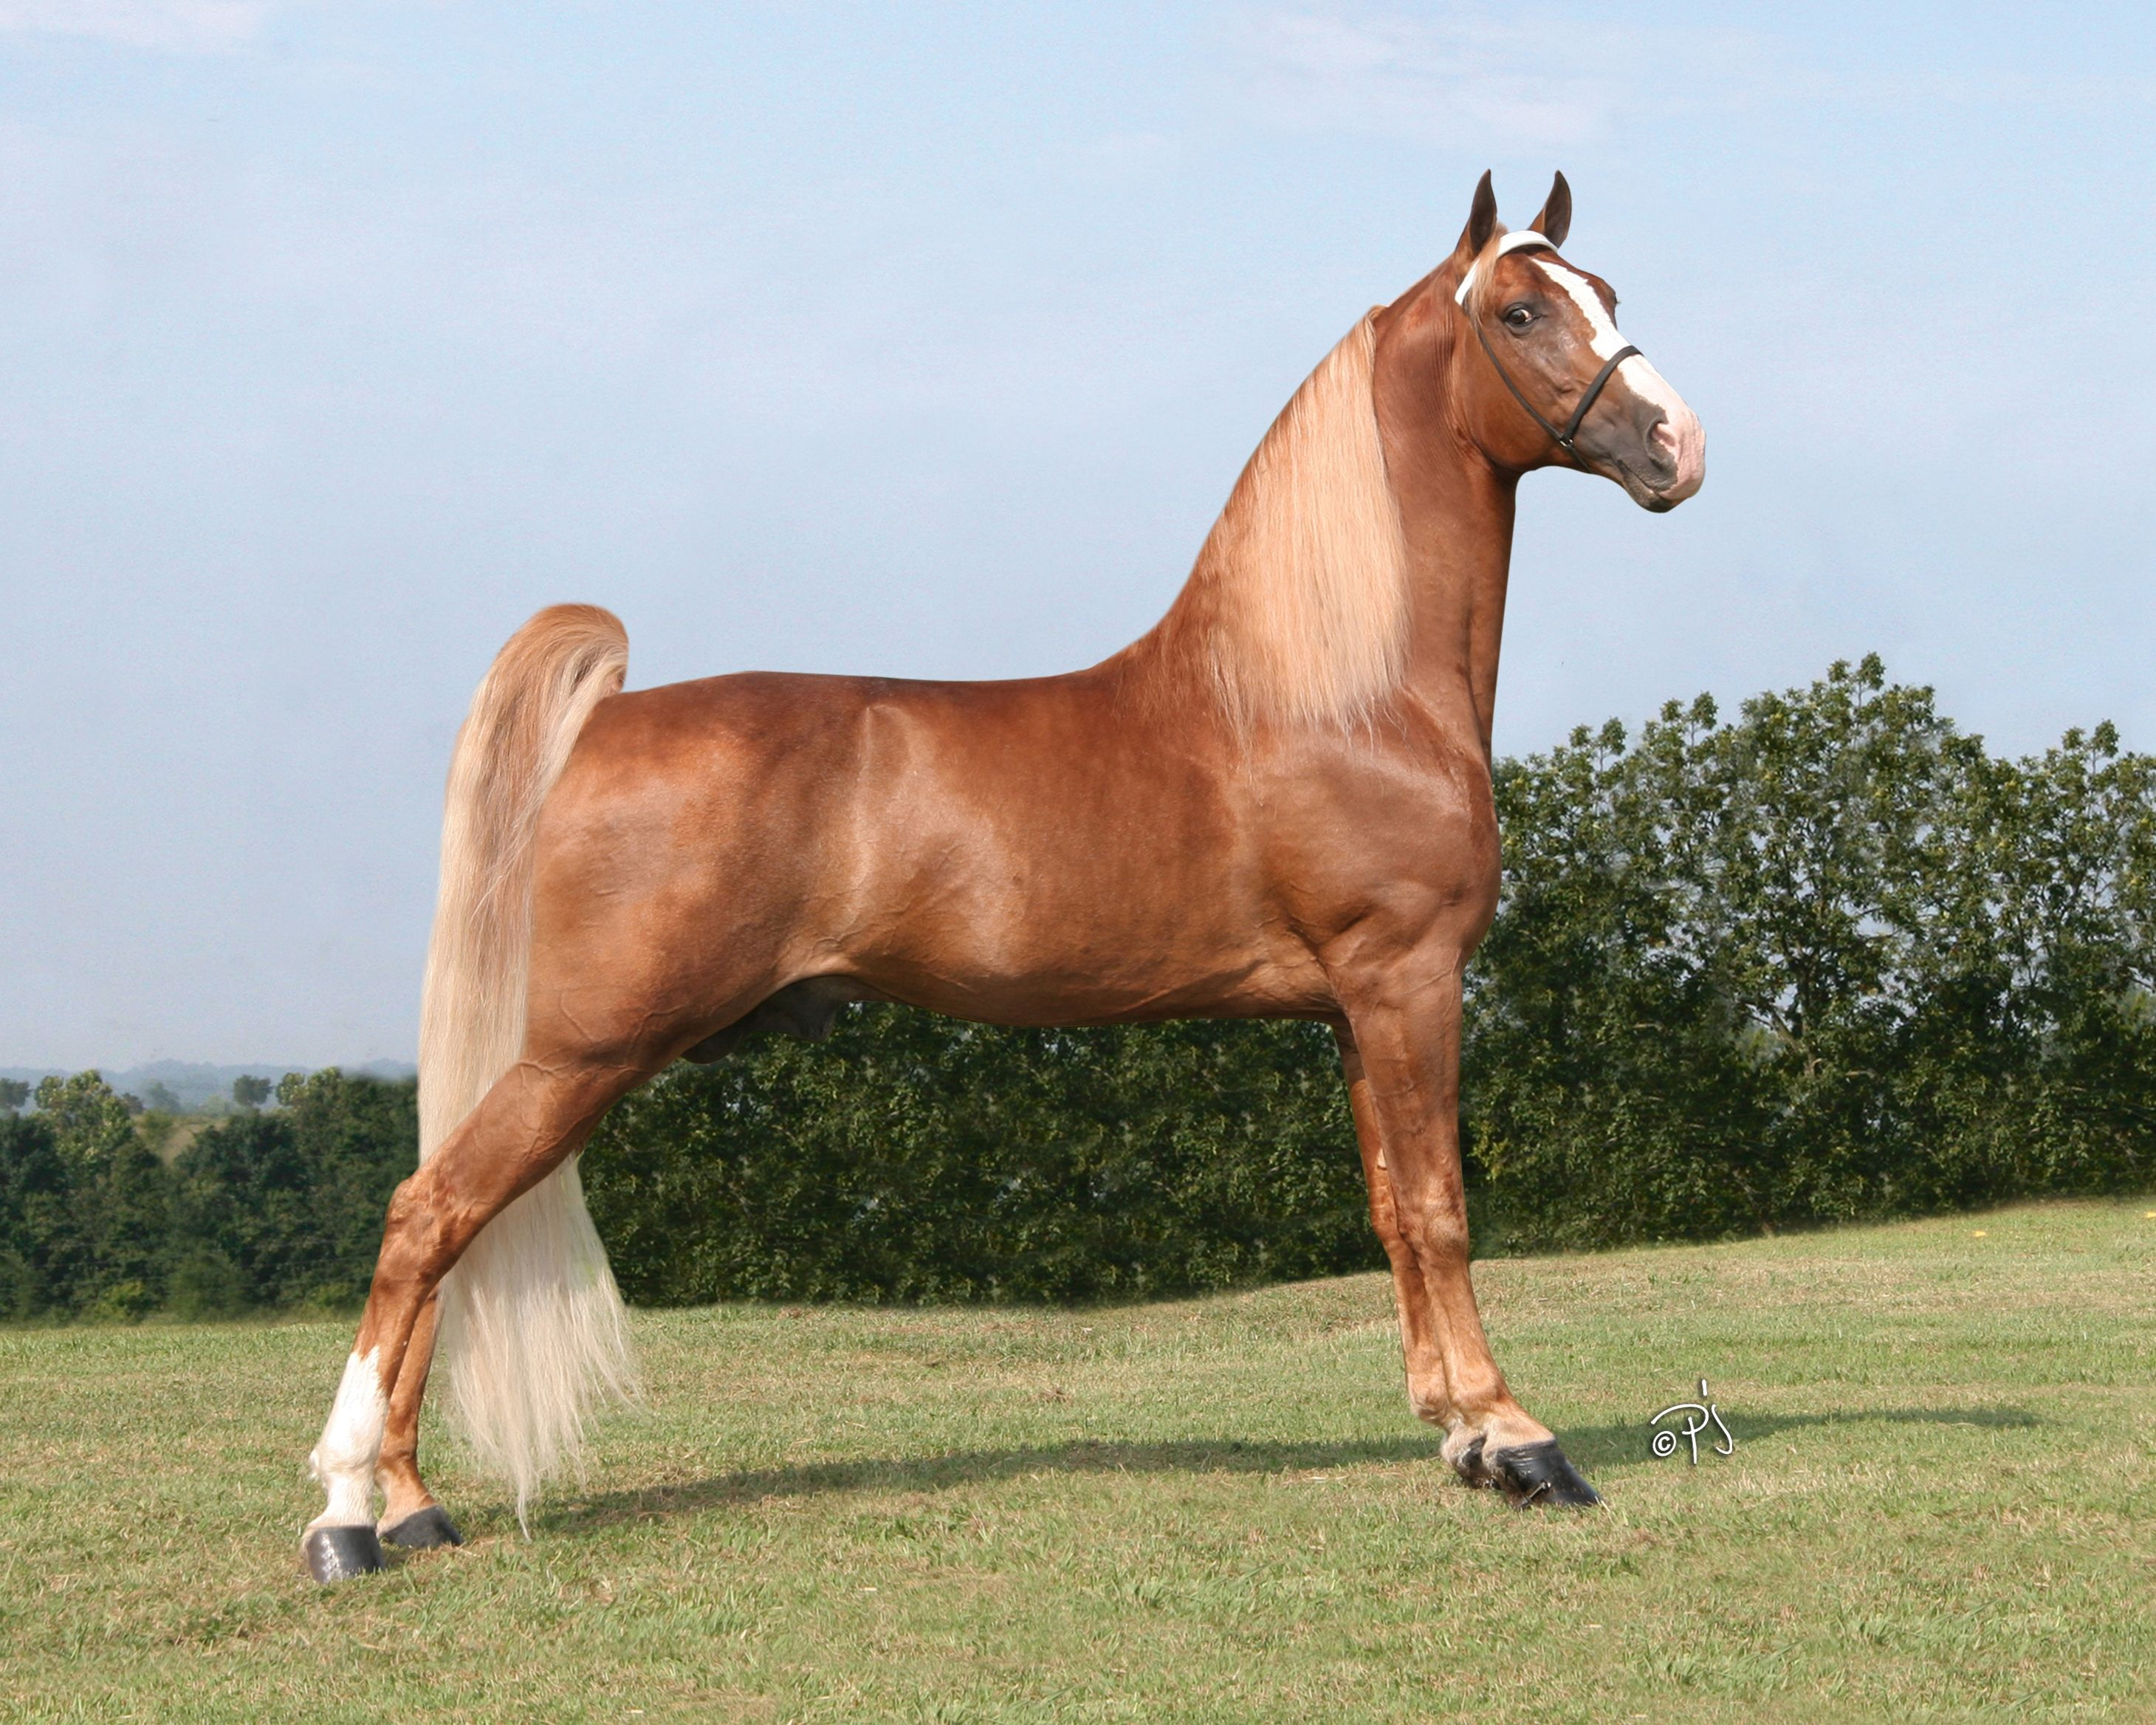 Wgc The Whole Nine Yards Purchased The Scoop Tennessee Walker Horse Tennessee Walking Horse Pretty Horses [ 2336 x 2920 Pixel ]